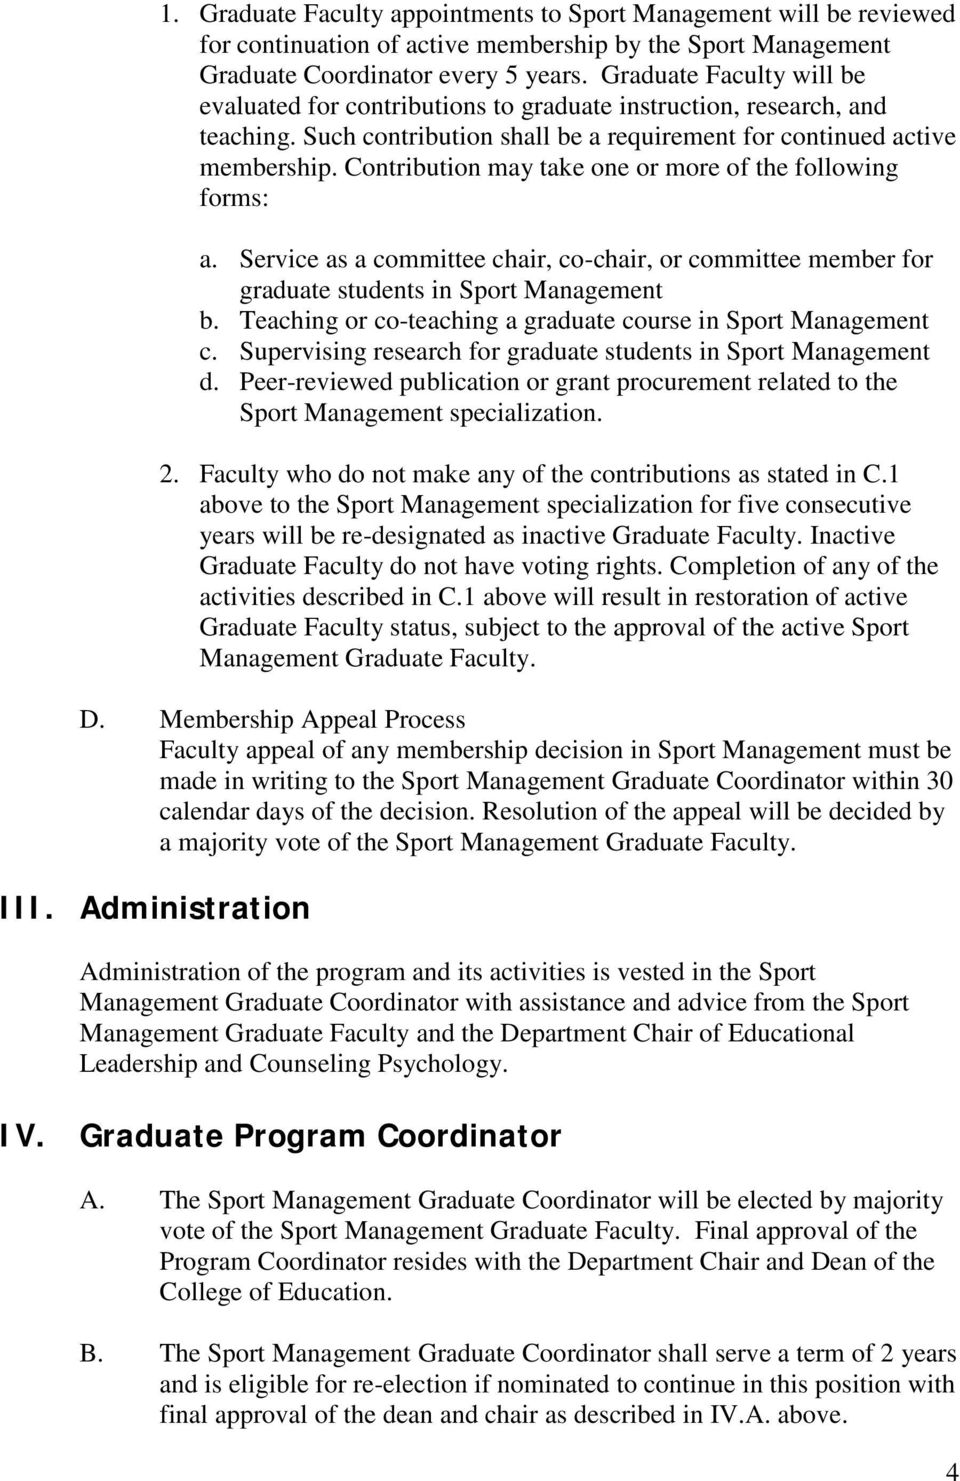 Contribution may take one or more of the following forms: a. Service as a committee chair, co-chair, or committee member for graduate students in Sport Management b.